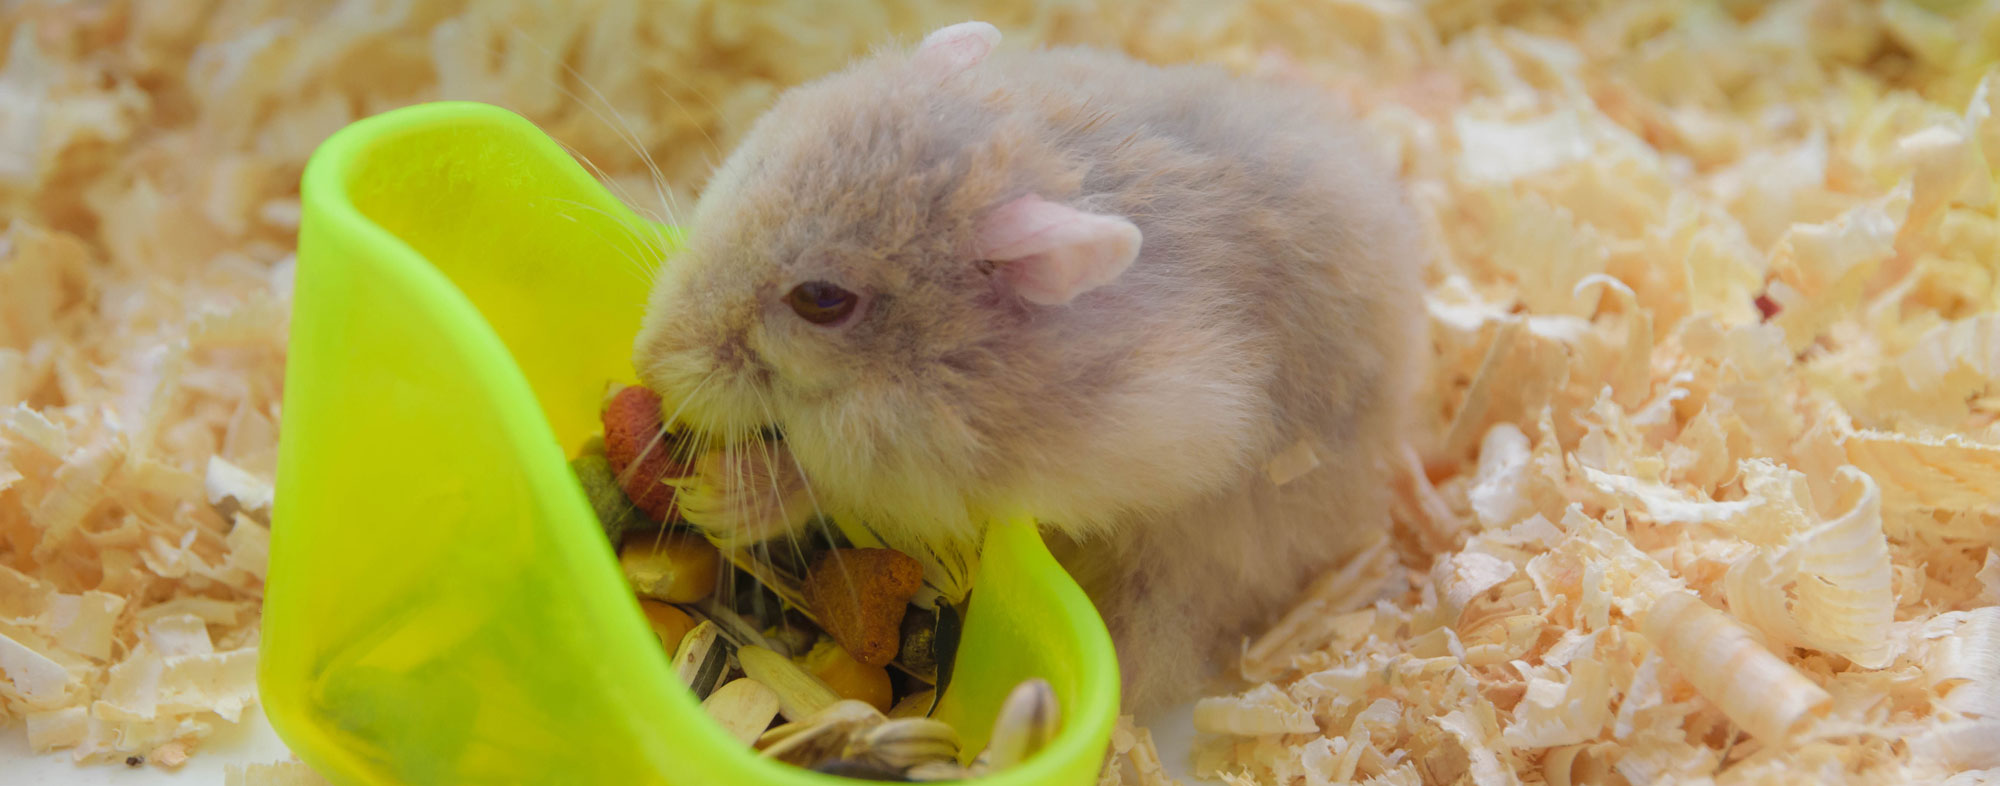 Your small pet animal will appreciate a well-designed cage or habitat